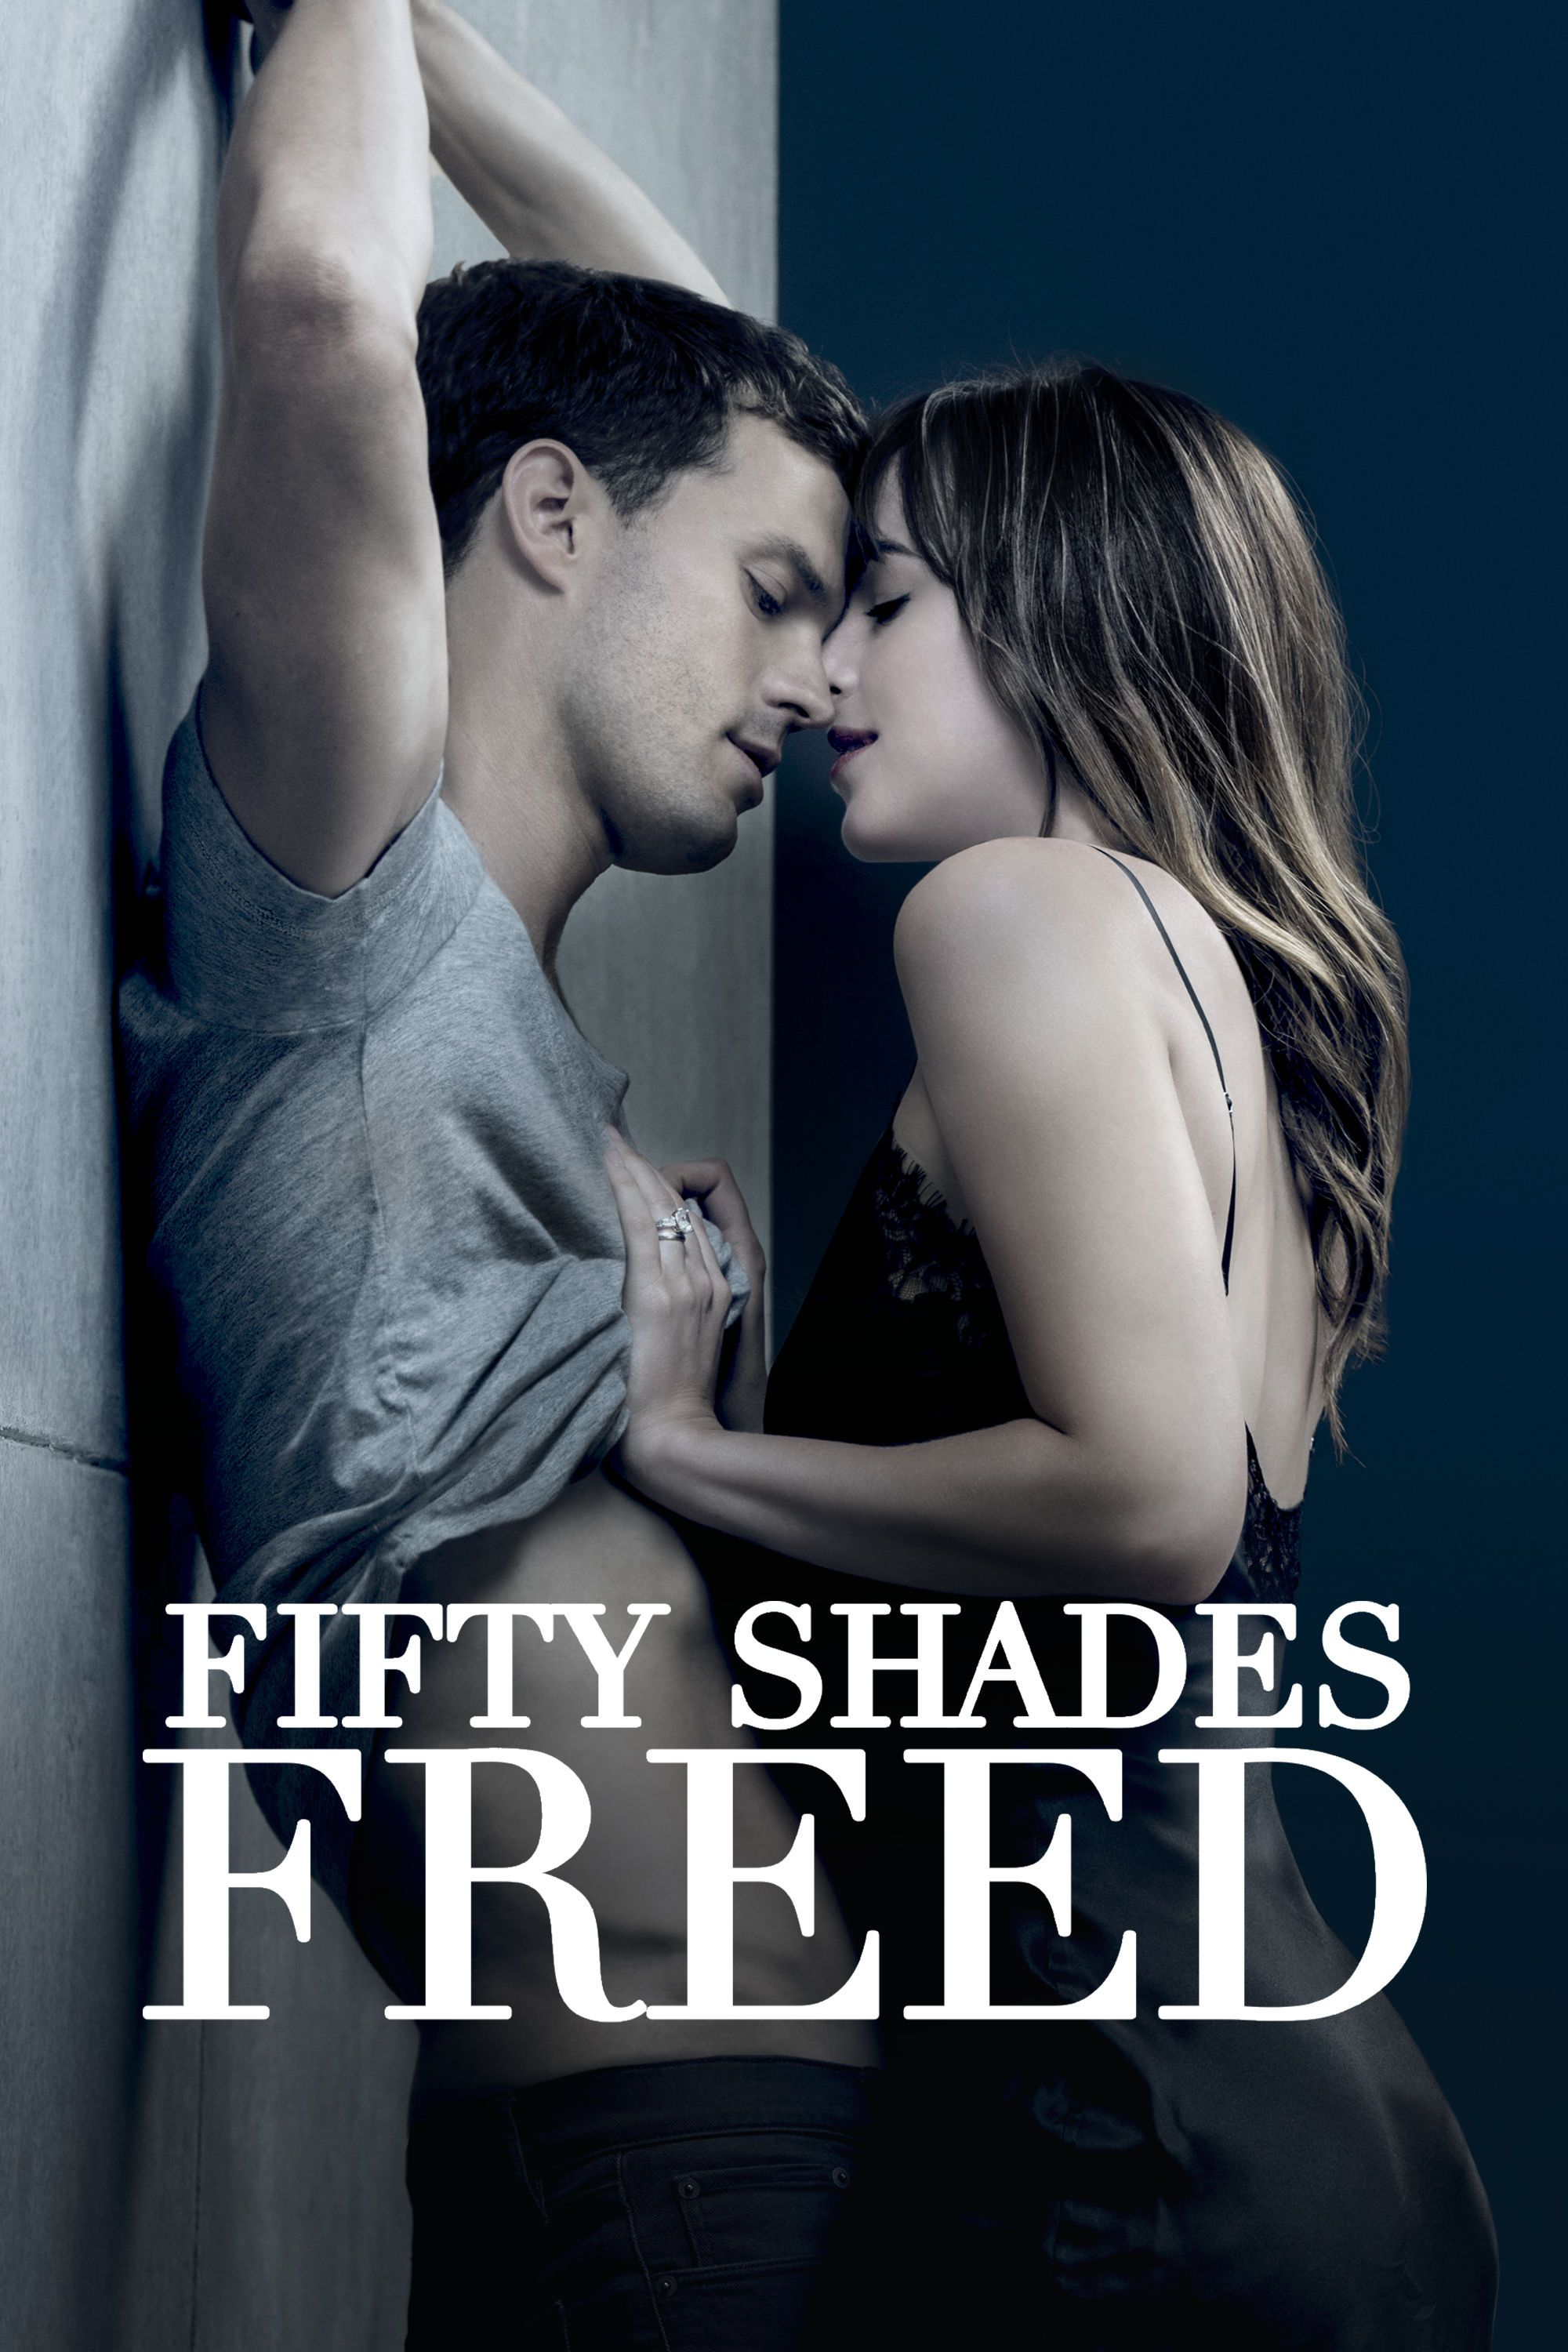 fifty shades of grey stream online free